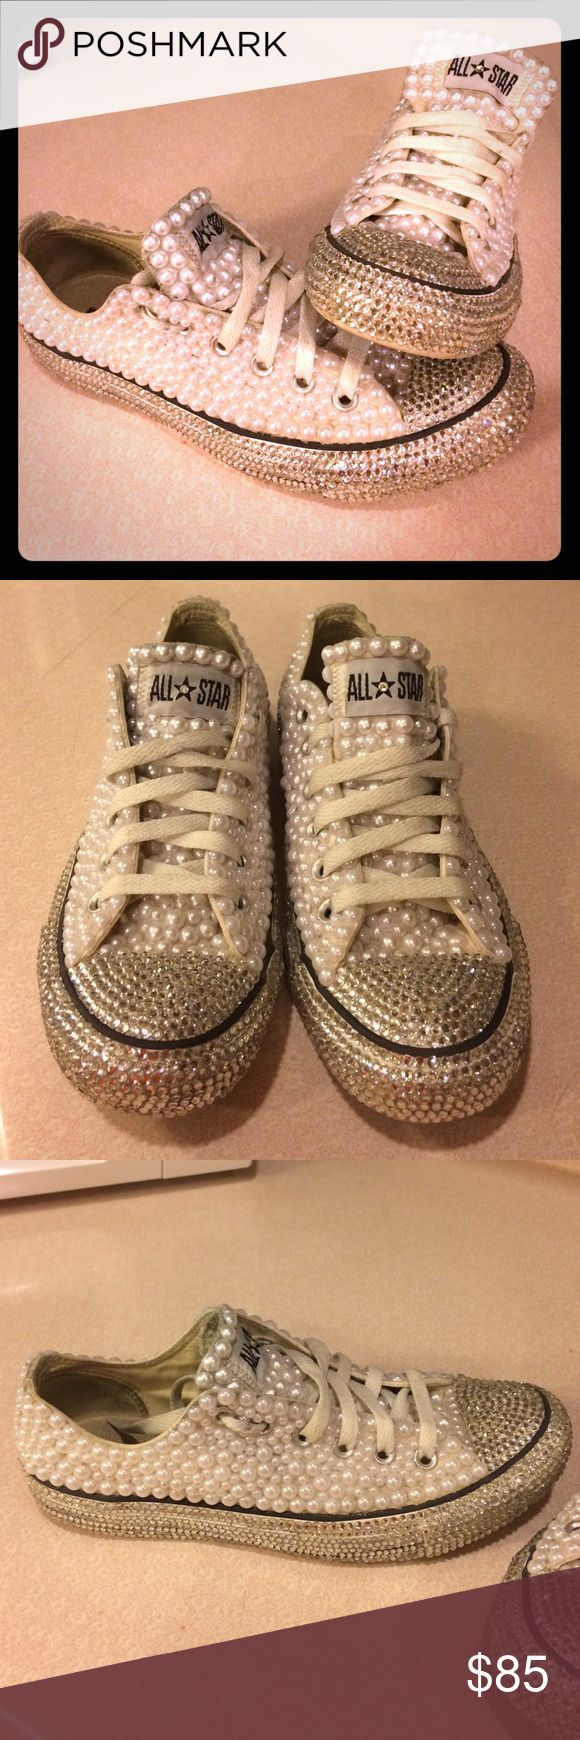 1000 ideas about Bedazzled Converse on Pinterest  Bling